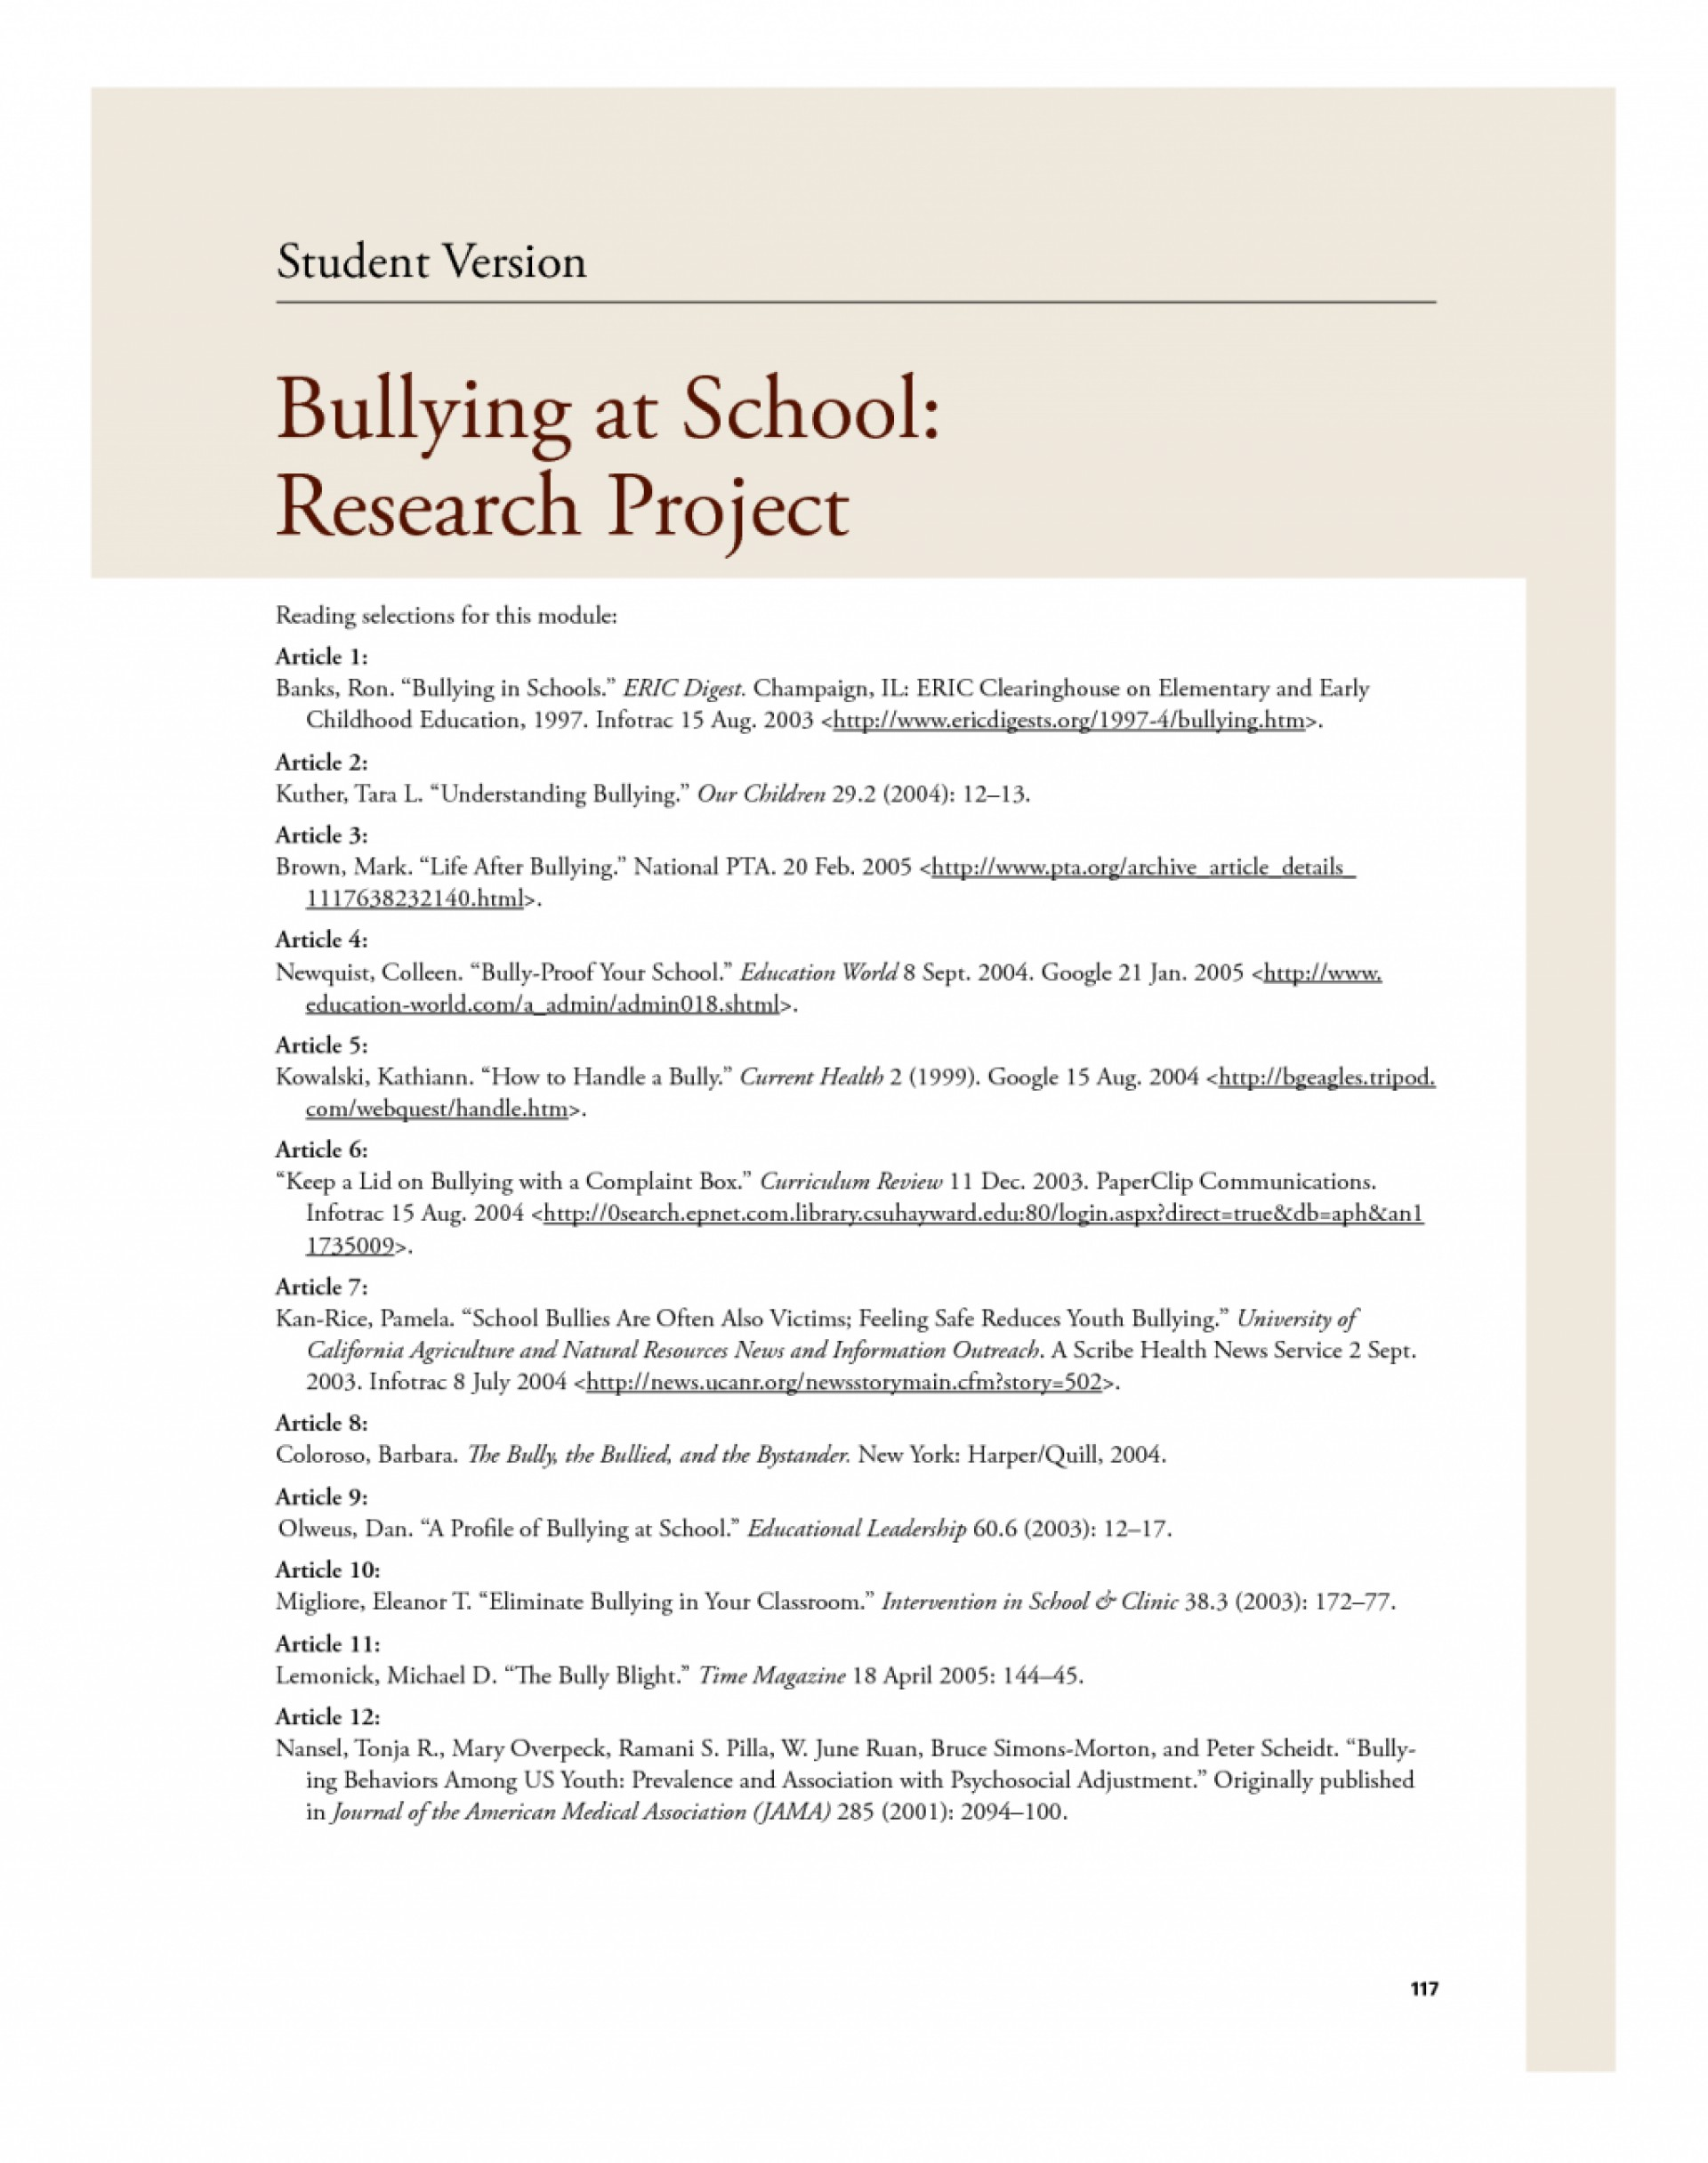 019 Conclusion Bullying Research Paper Violence In20hools Essay Causes20hool Topics Jamaican20 Dreaded 1920